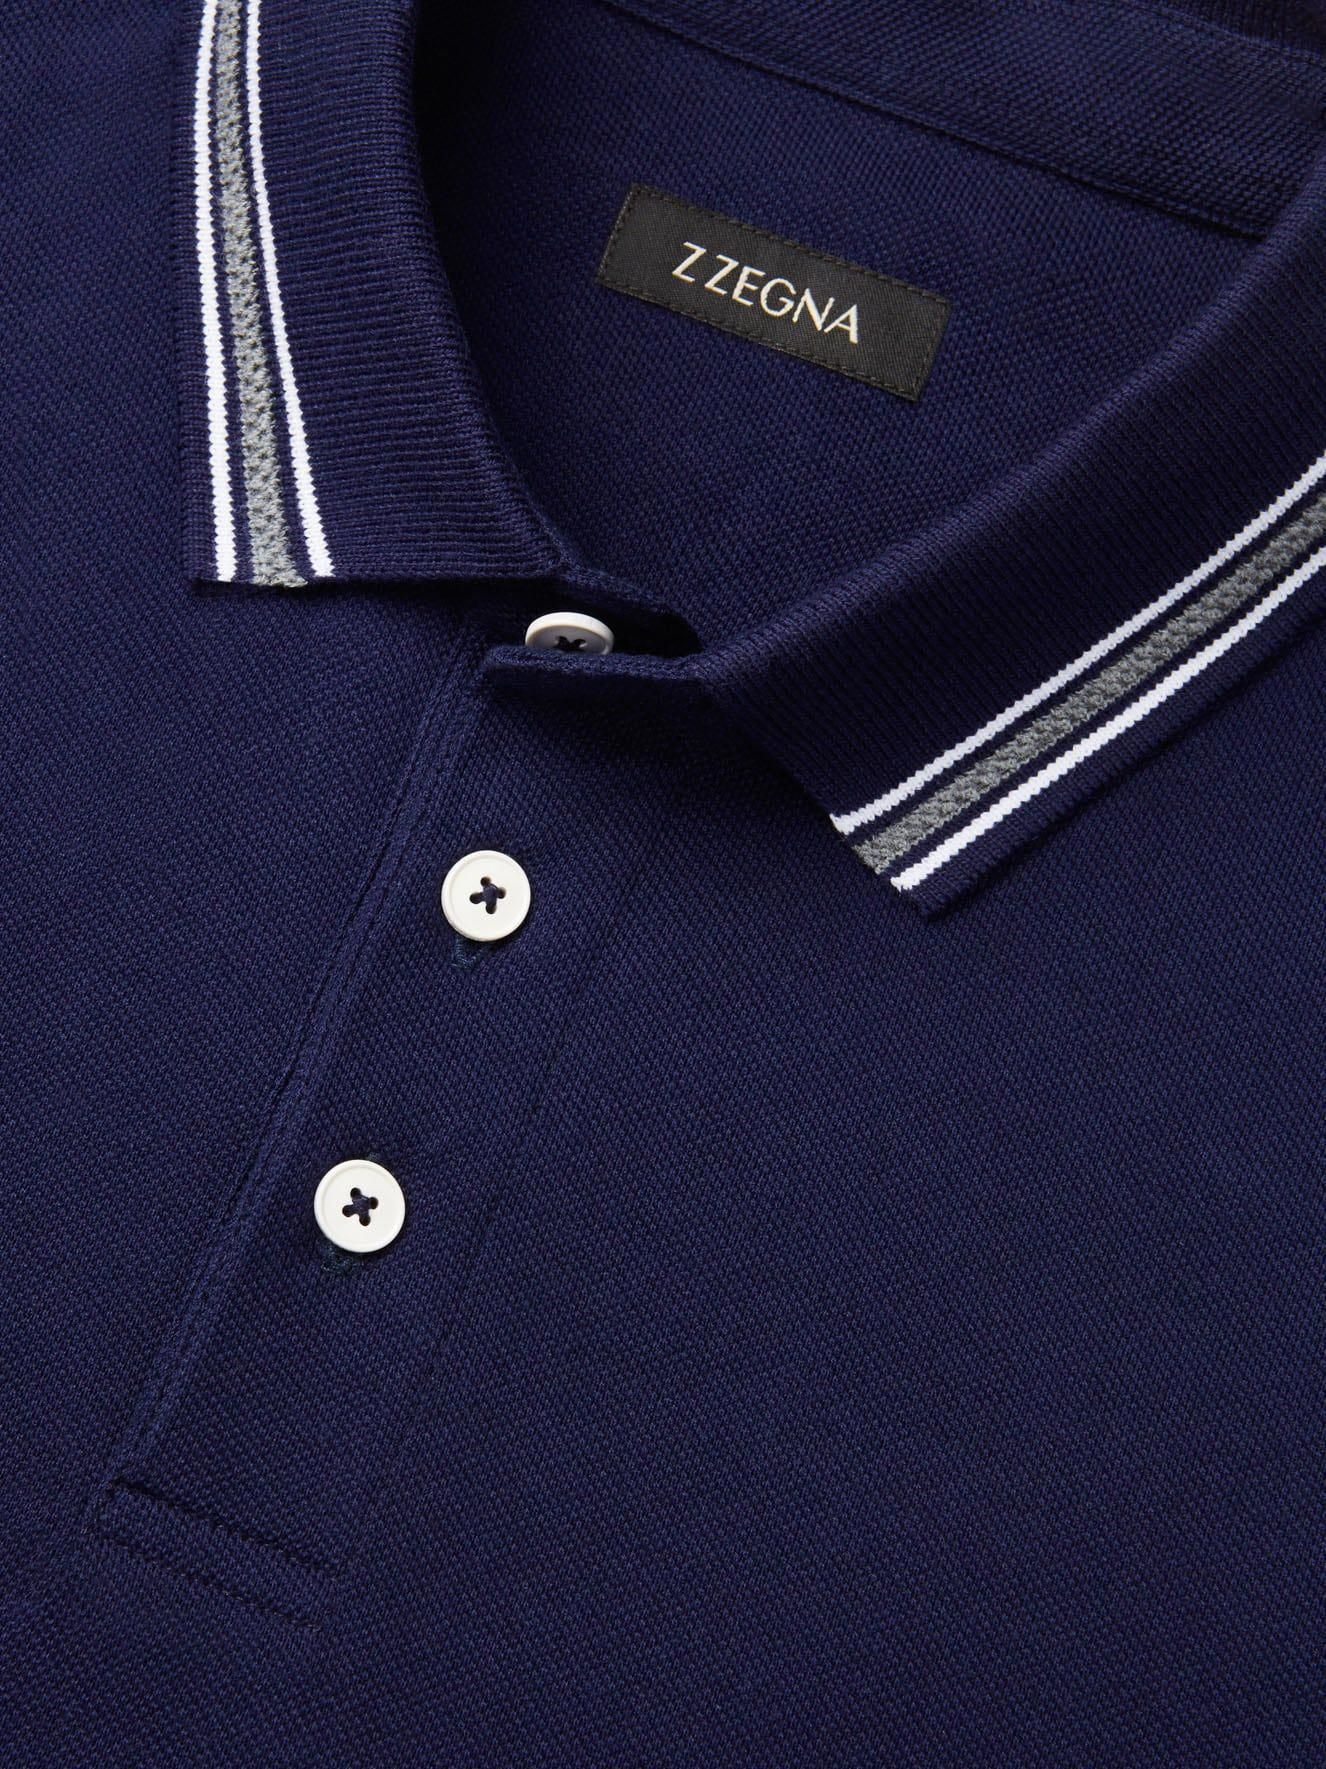 a23f4fe4 Navy Cotton Piqué Logo Polo Shirt #menst-shirtsdesign | t-shirt in ...